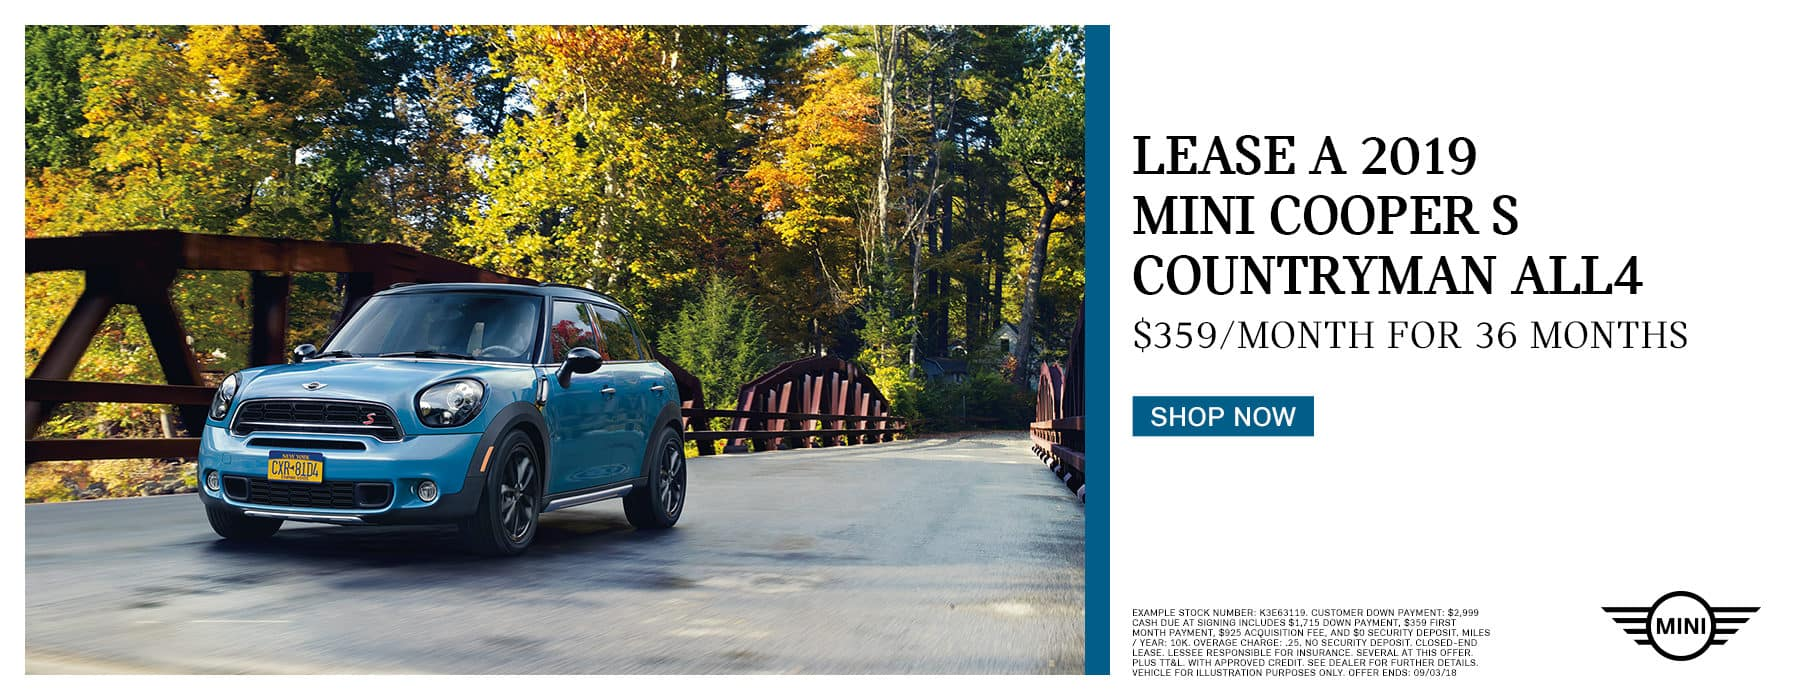 lease-2019-countryman-all4-359-per-month